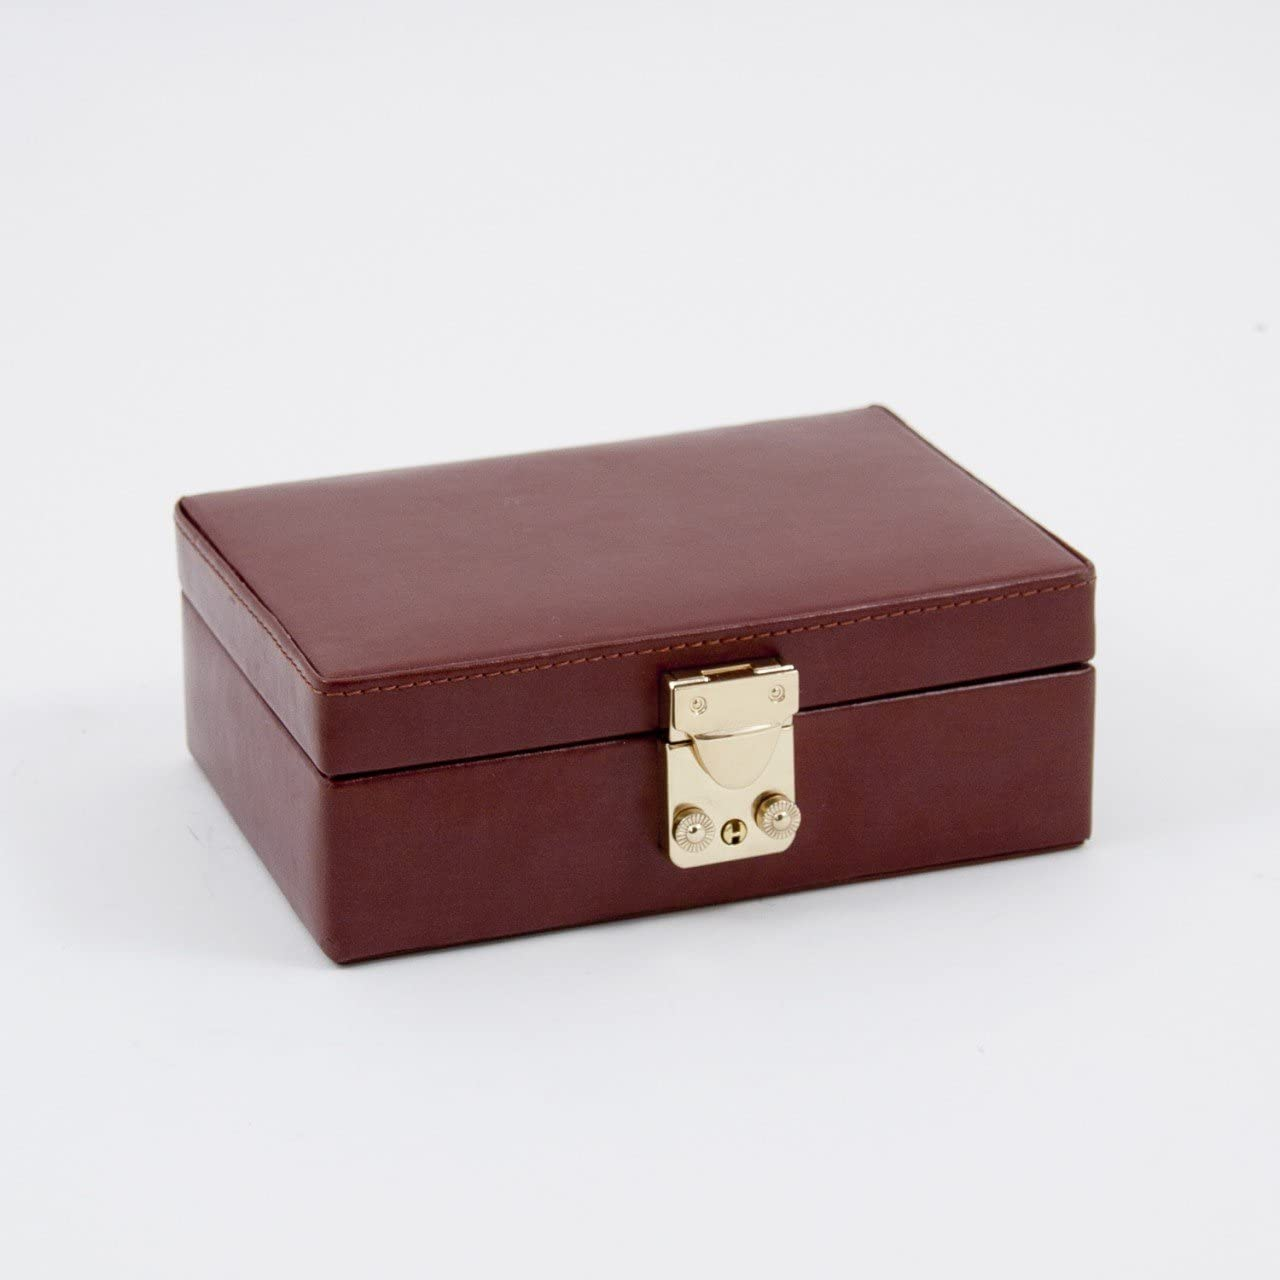 Men's Cufflink Box Color: Brown